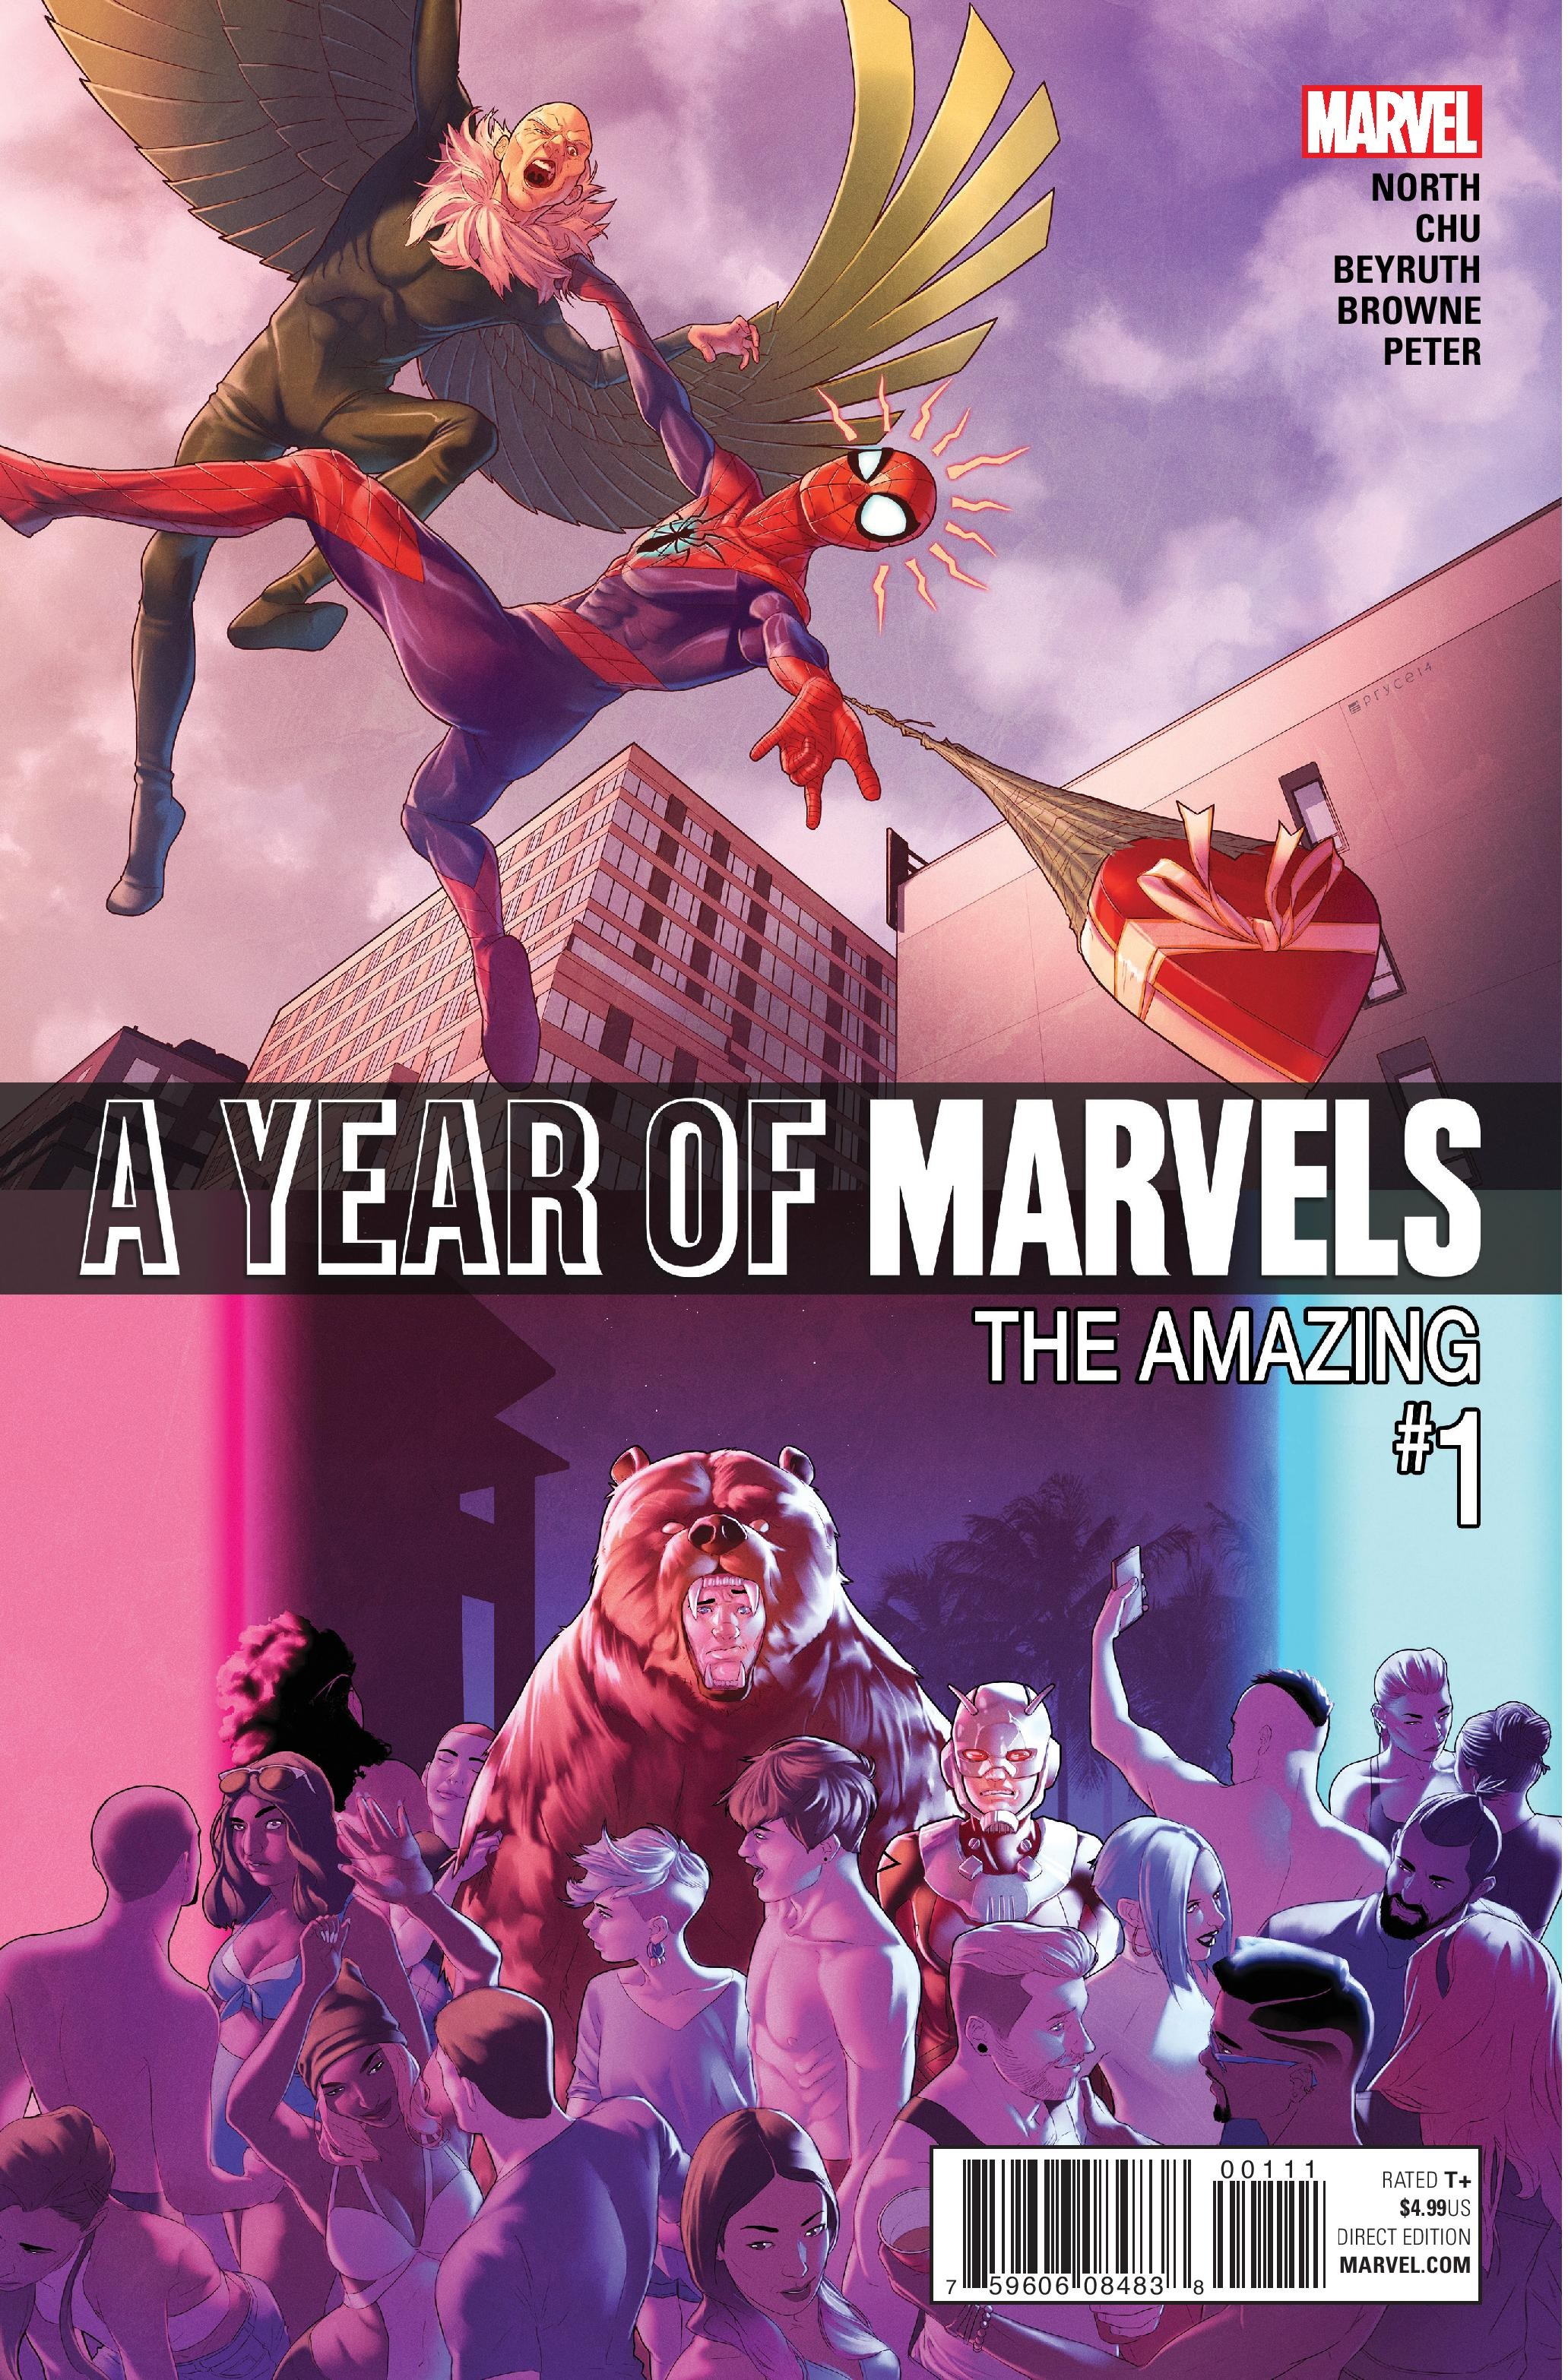 A Year of Marvels: The Incredible (2016) #1